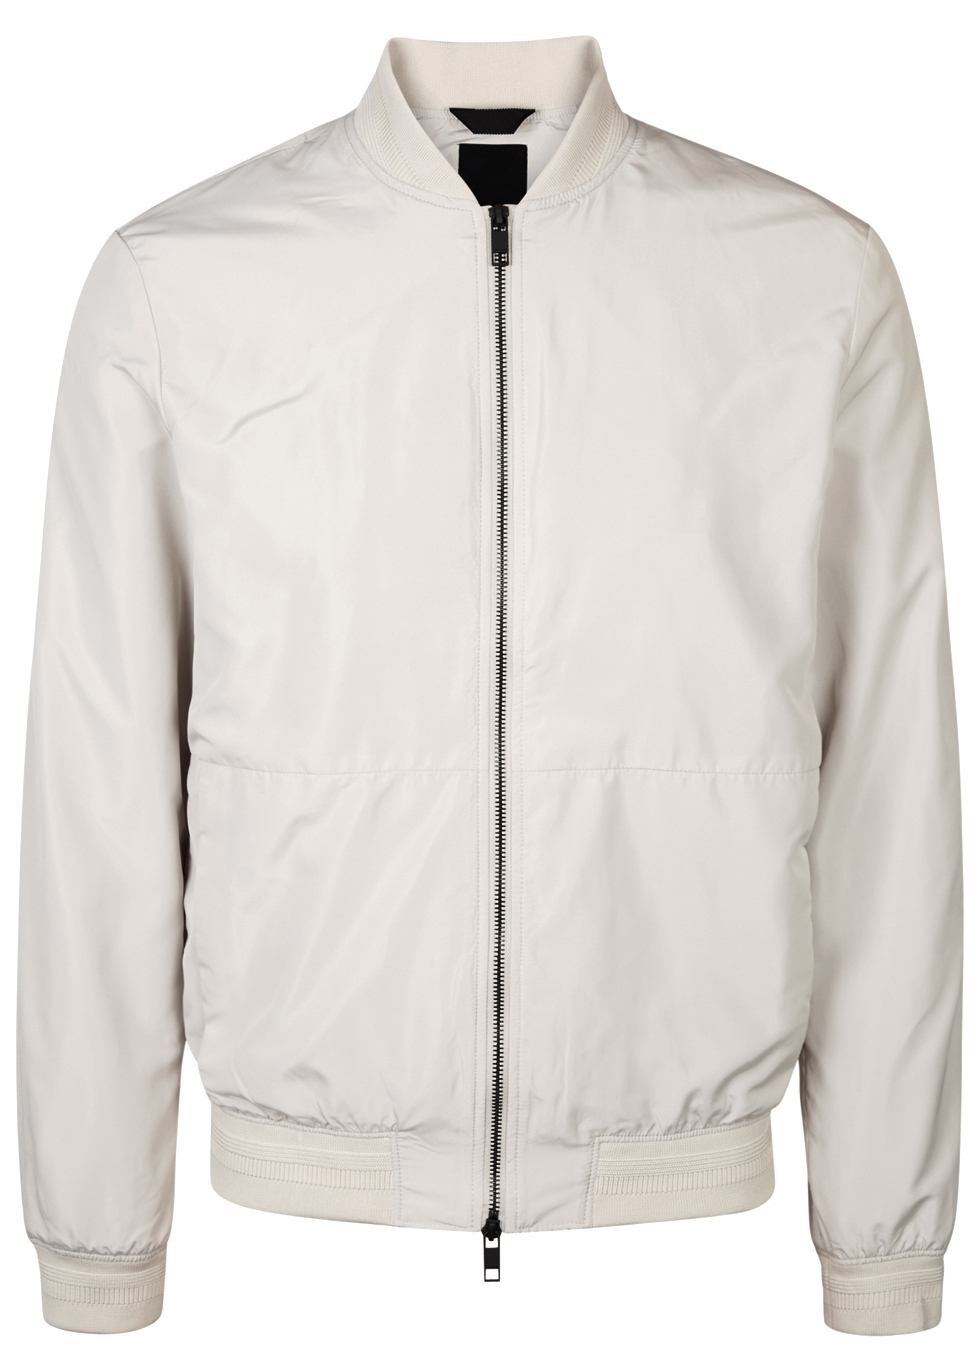 J.LINDEBERG THOM GRAVITY WATER-RESISTANT SHELL JACKET